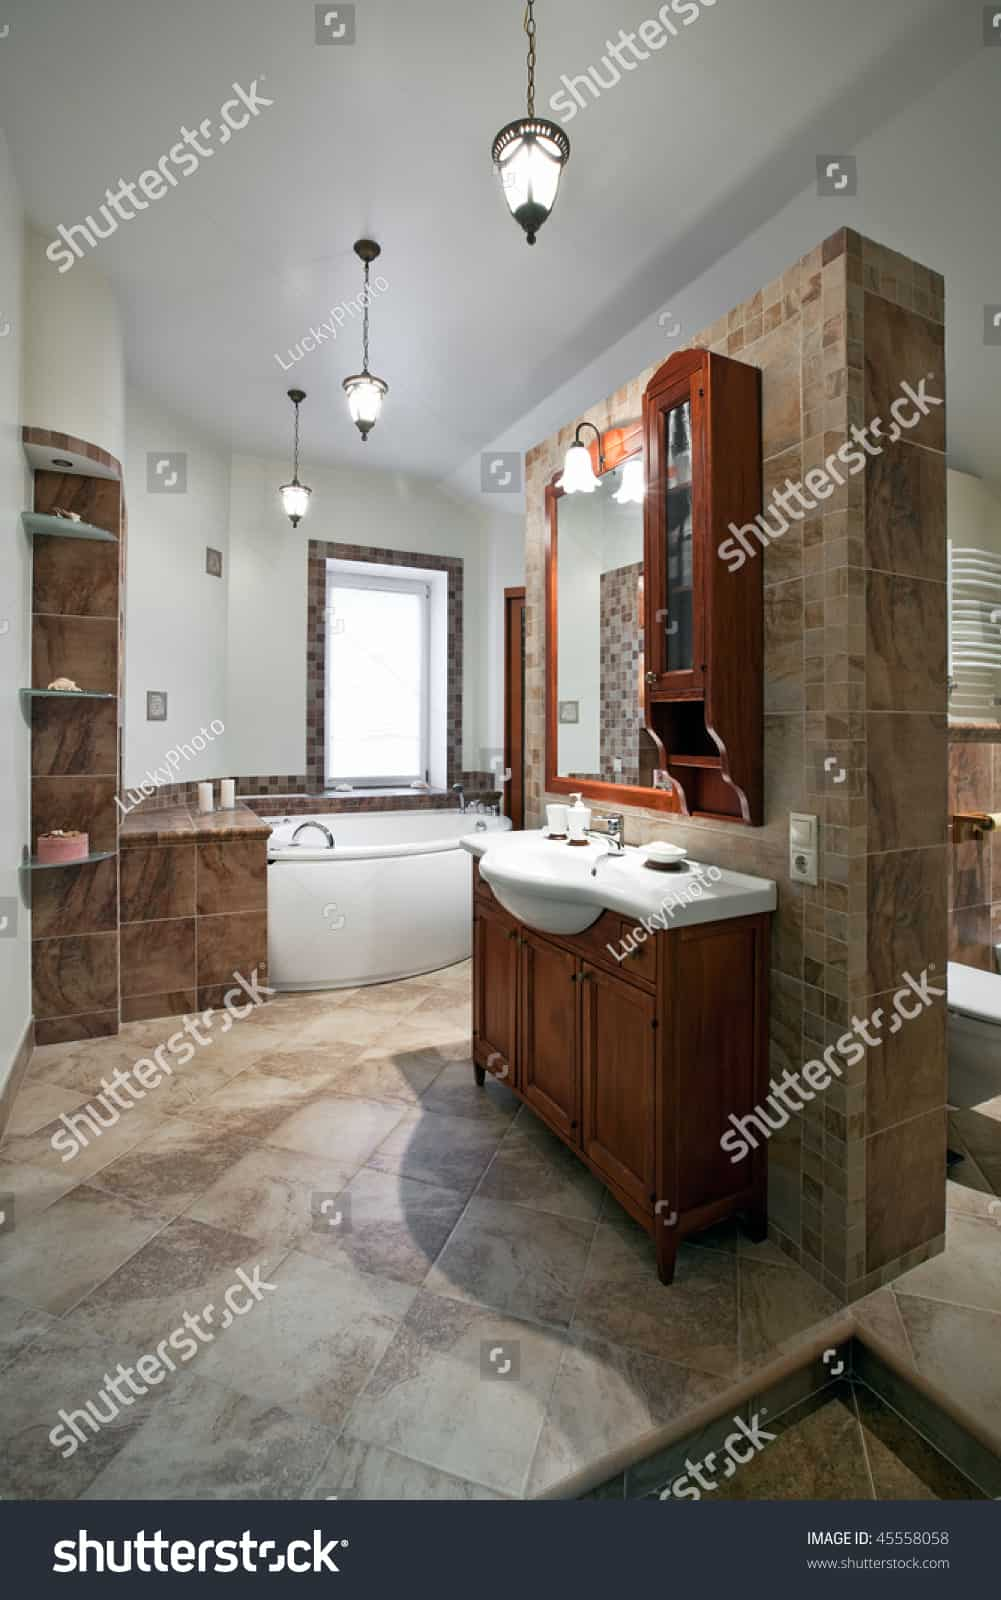 stock photo interior of the luxury bathroom with red wood furniture and window 45558058